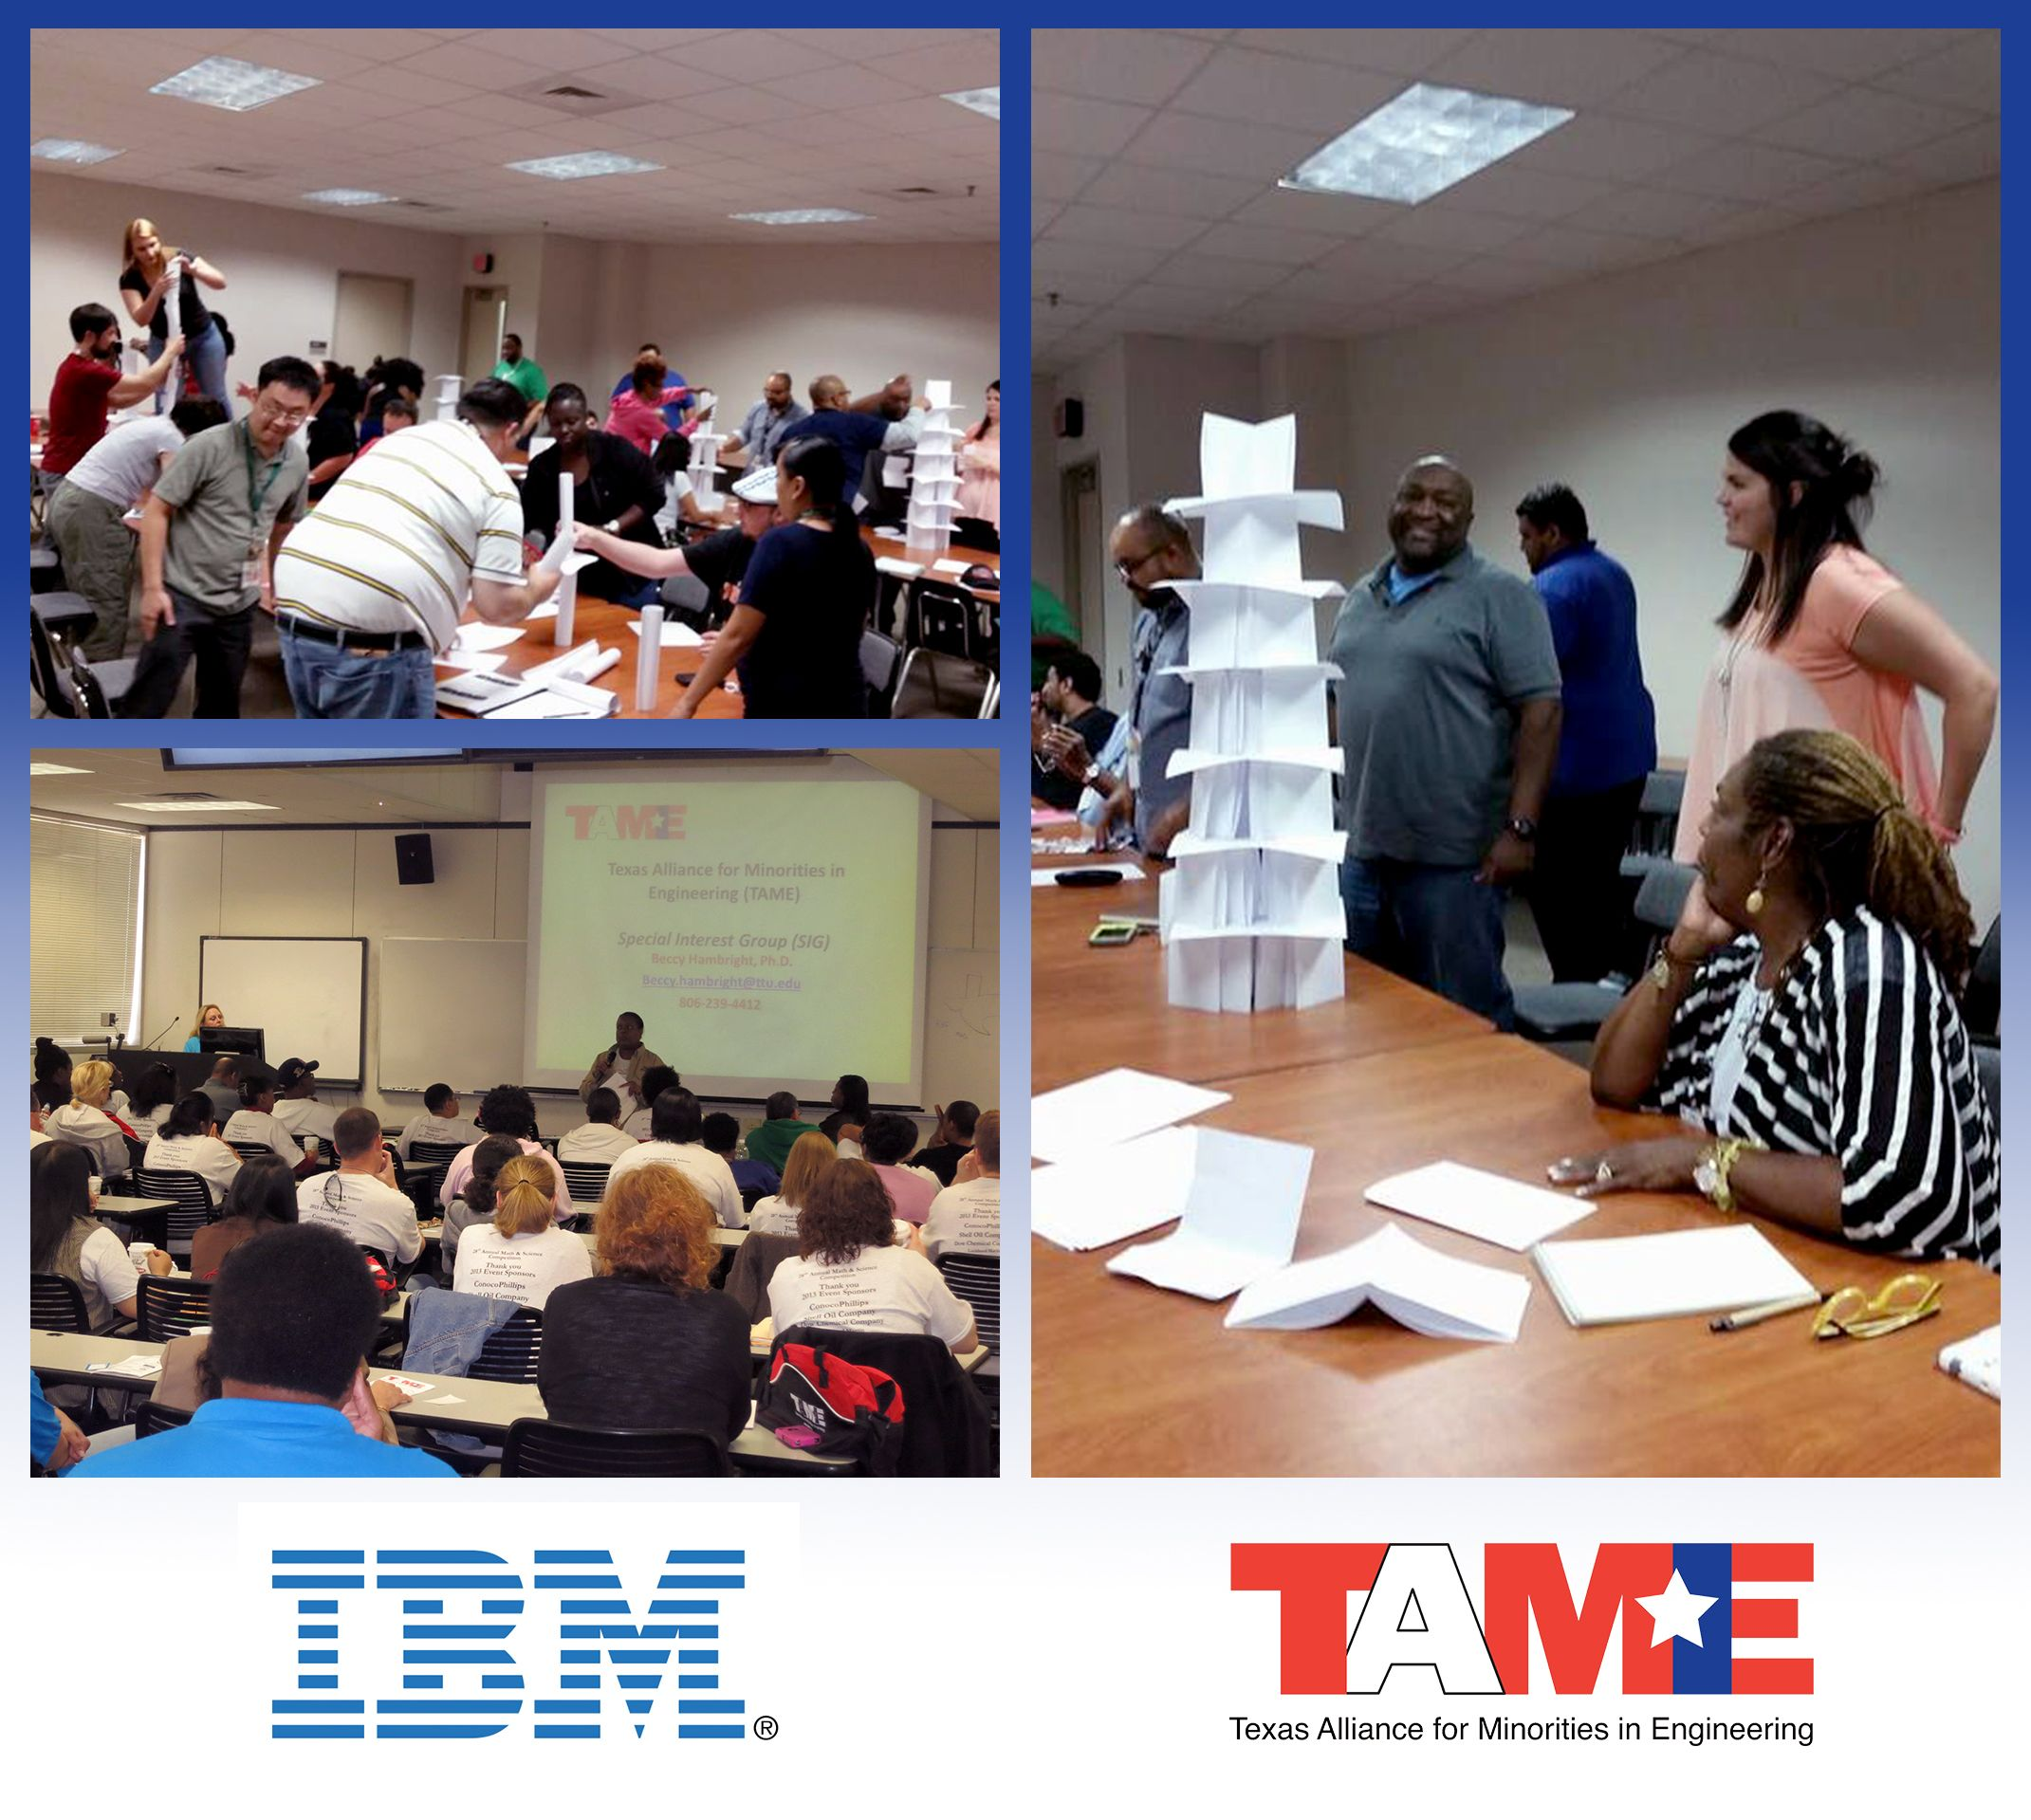 IBM Awards $5000 to Support Texas Teachers